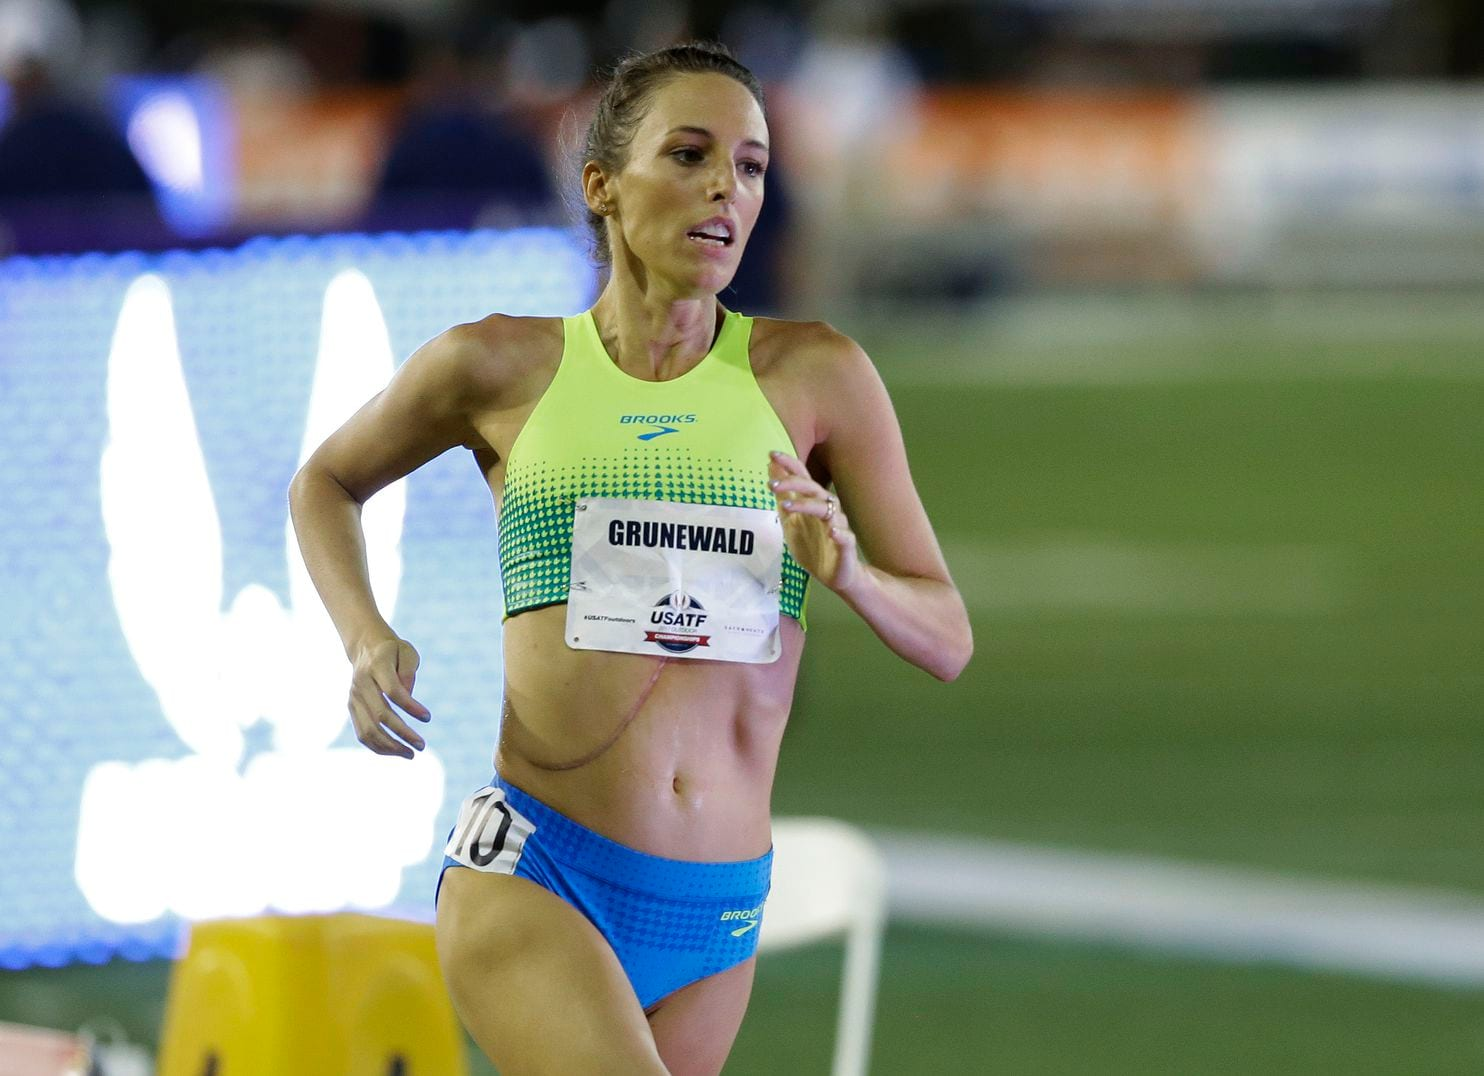 Gabriele Grunewald Shown Running In The 1500 Meter Race In 2017 Is In Comfort Care Rich Pedroncelli Associated Press